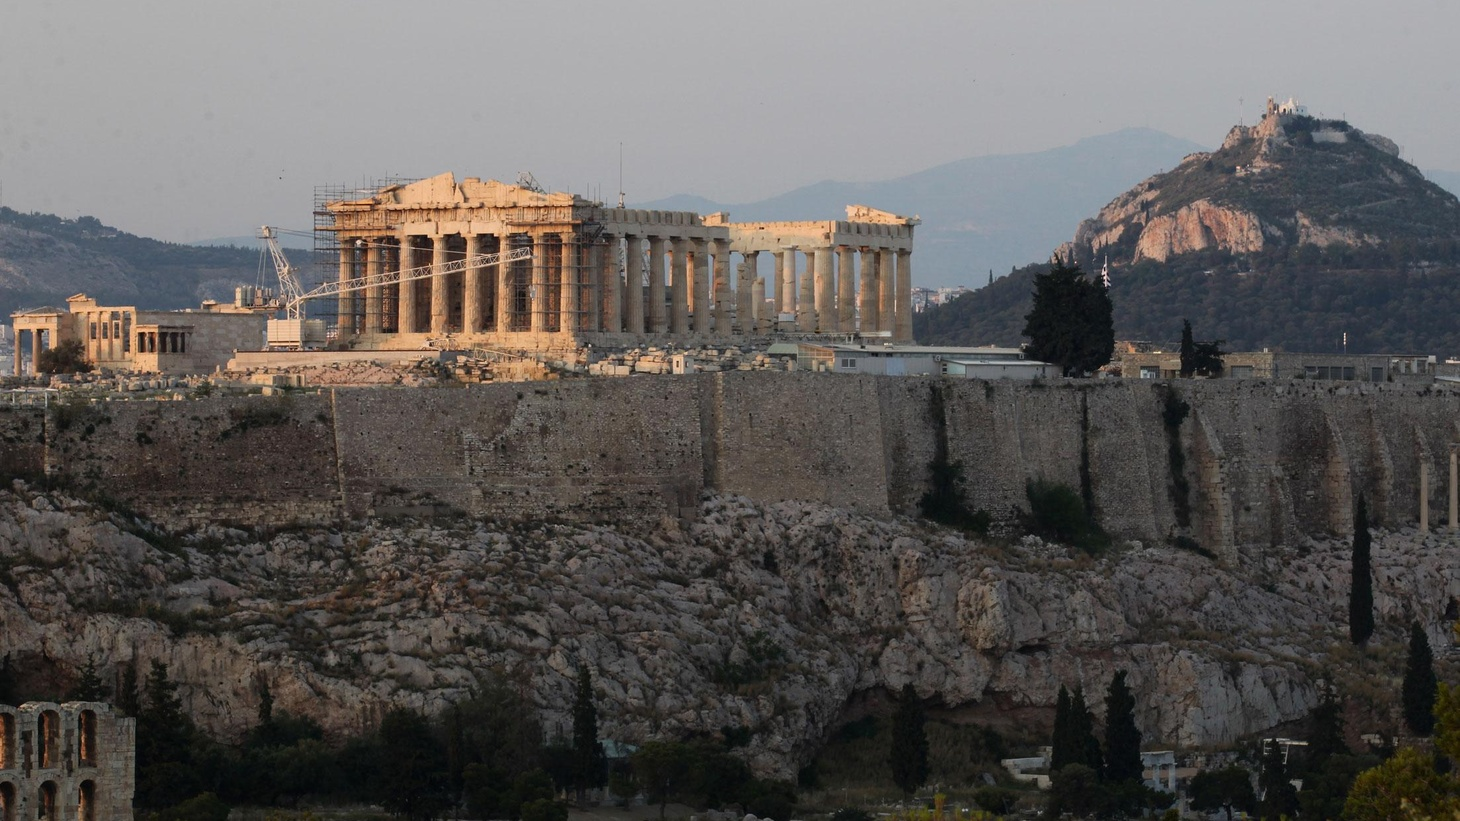 Greek debt's vast impact, the NYT's David Brooks on Fannie Mae fiddling while financial markets burned, AfPak security and troop withdrawal, and AARP on social security.